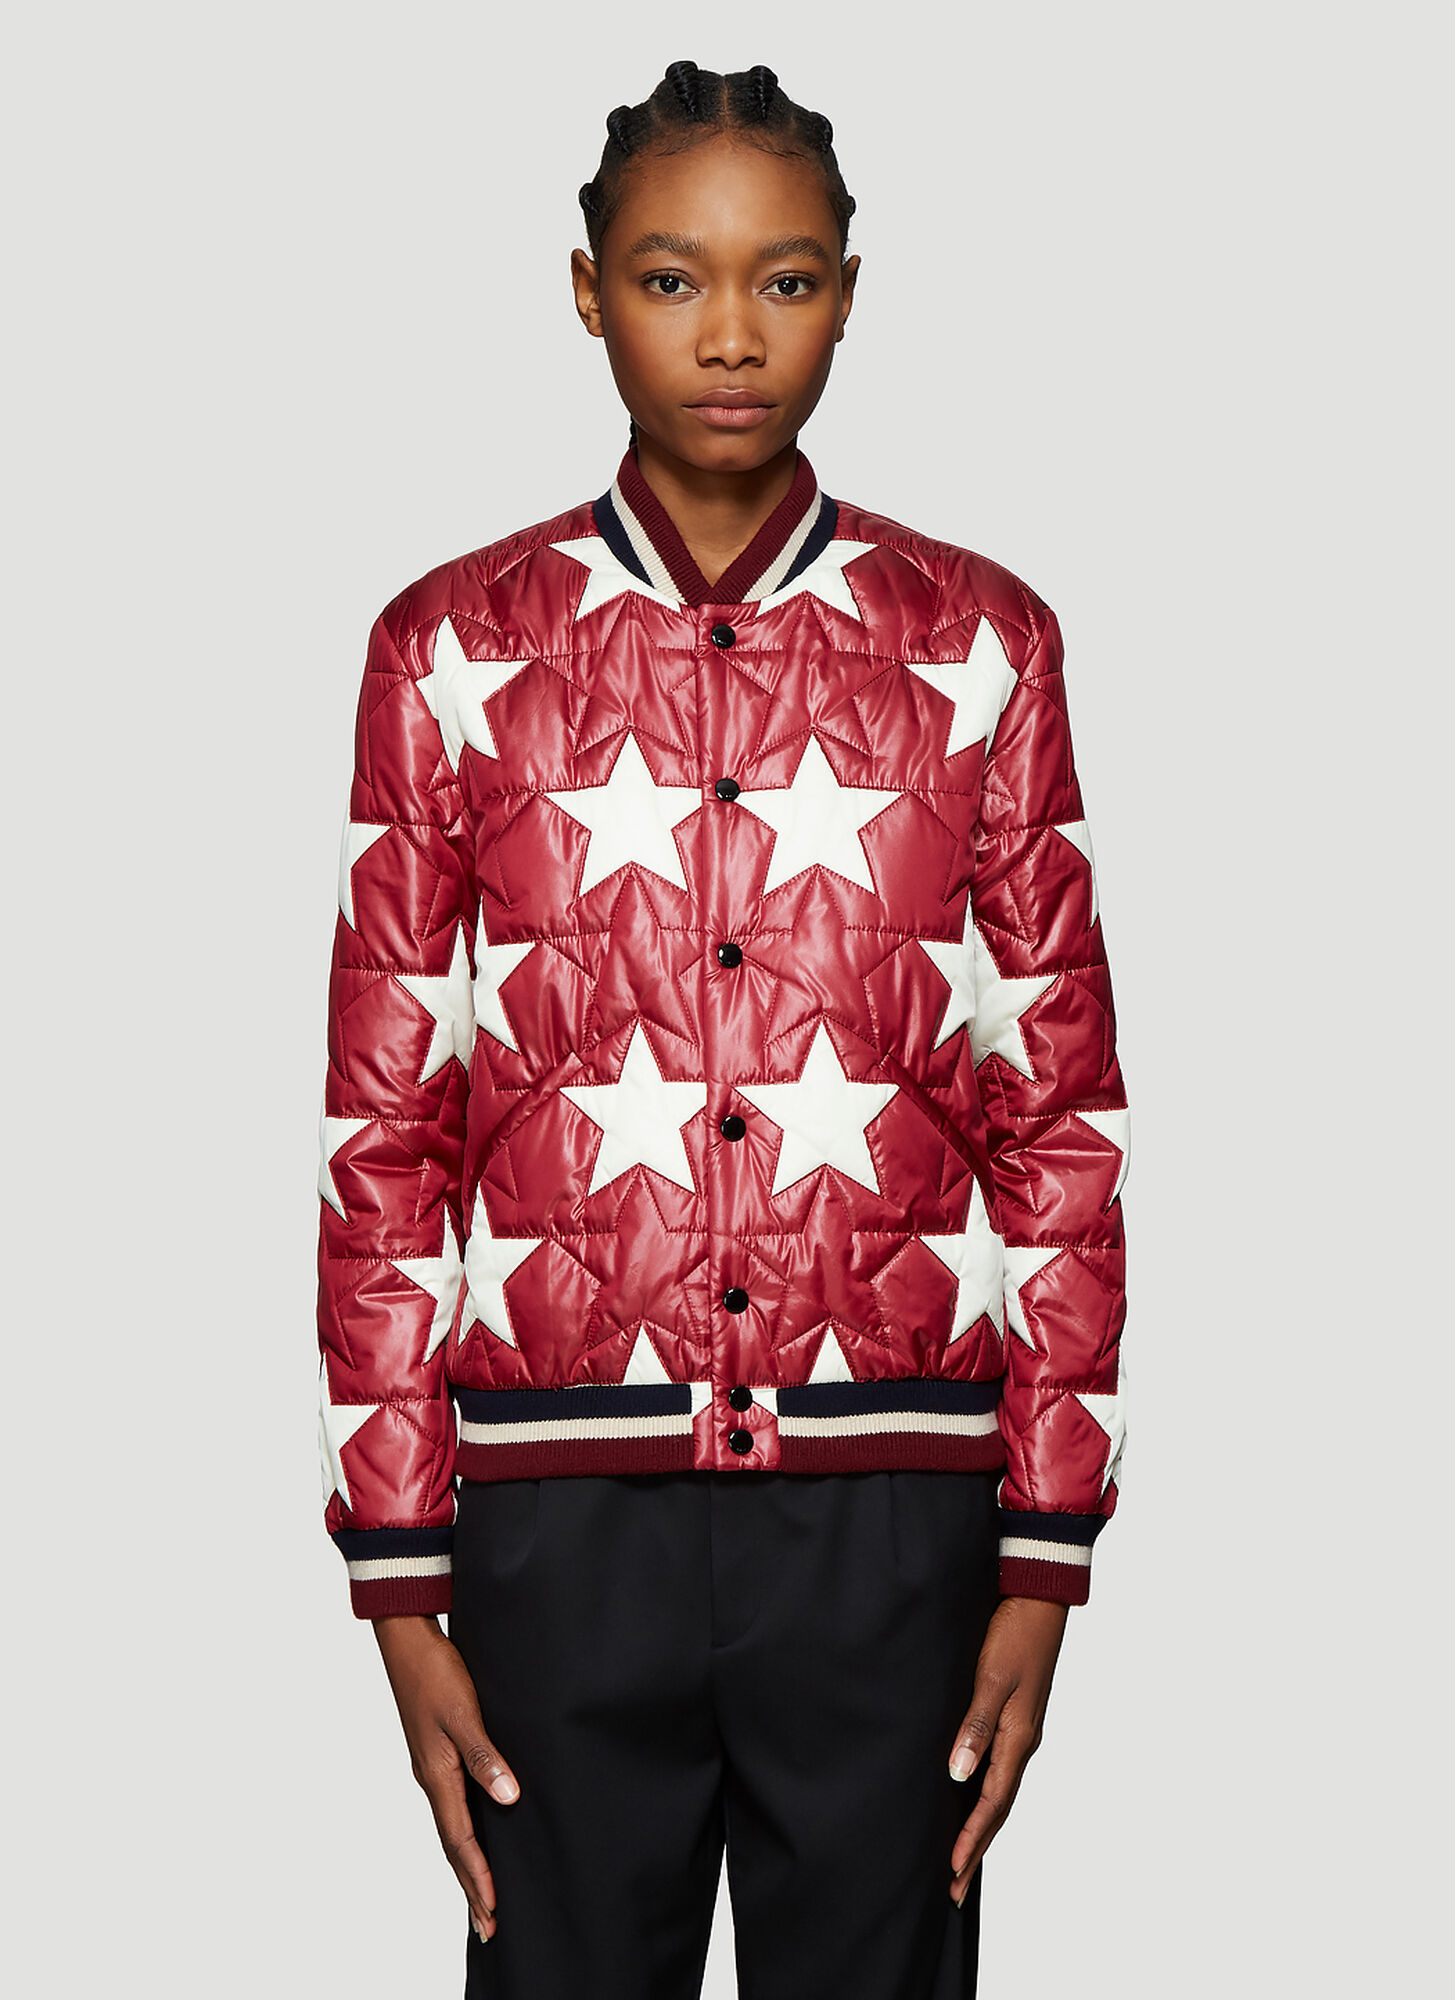 Saint Laurent Star Motif Bomber Jacket in Red